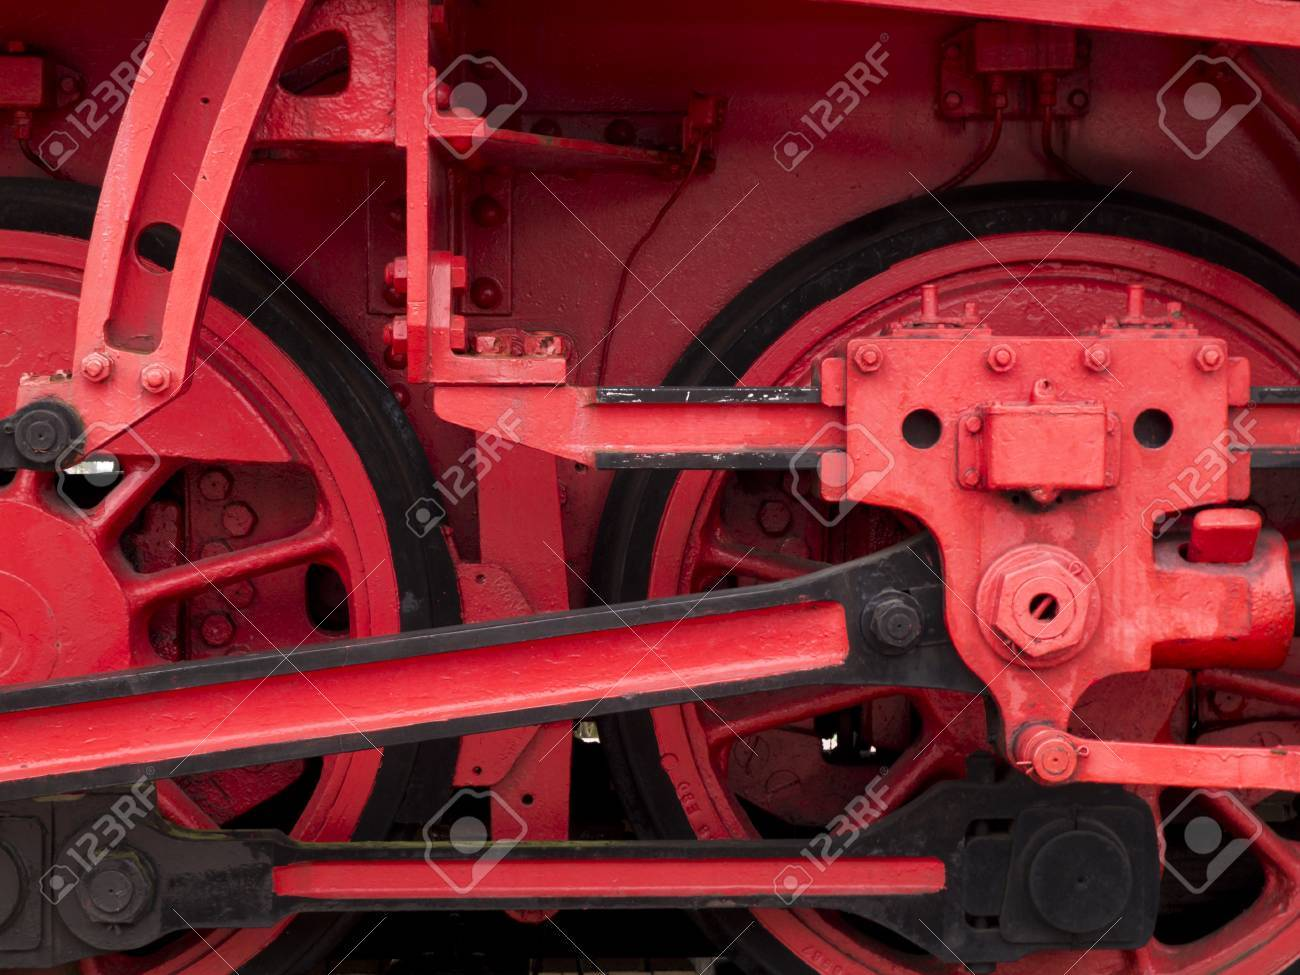 Wheels, Valve Gears And Rods Of Old Steam Locomotive Stock Photo ...